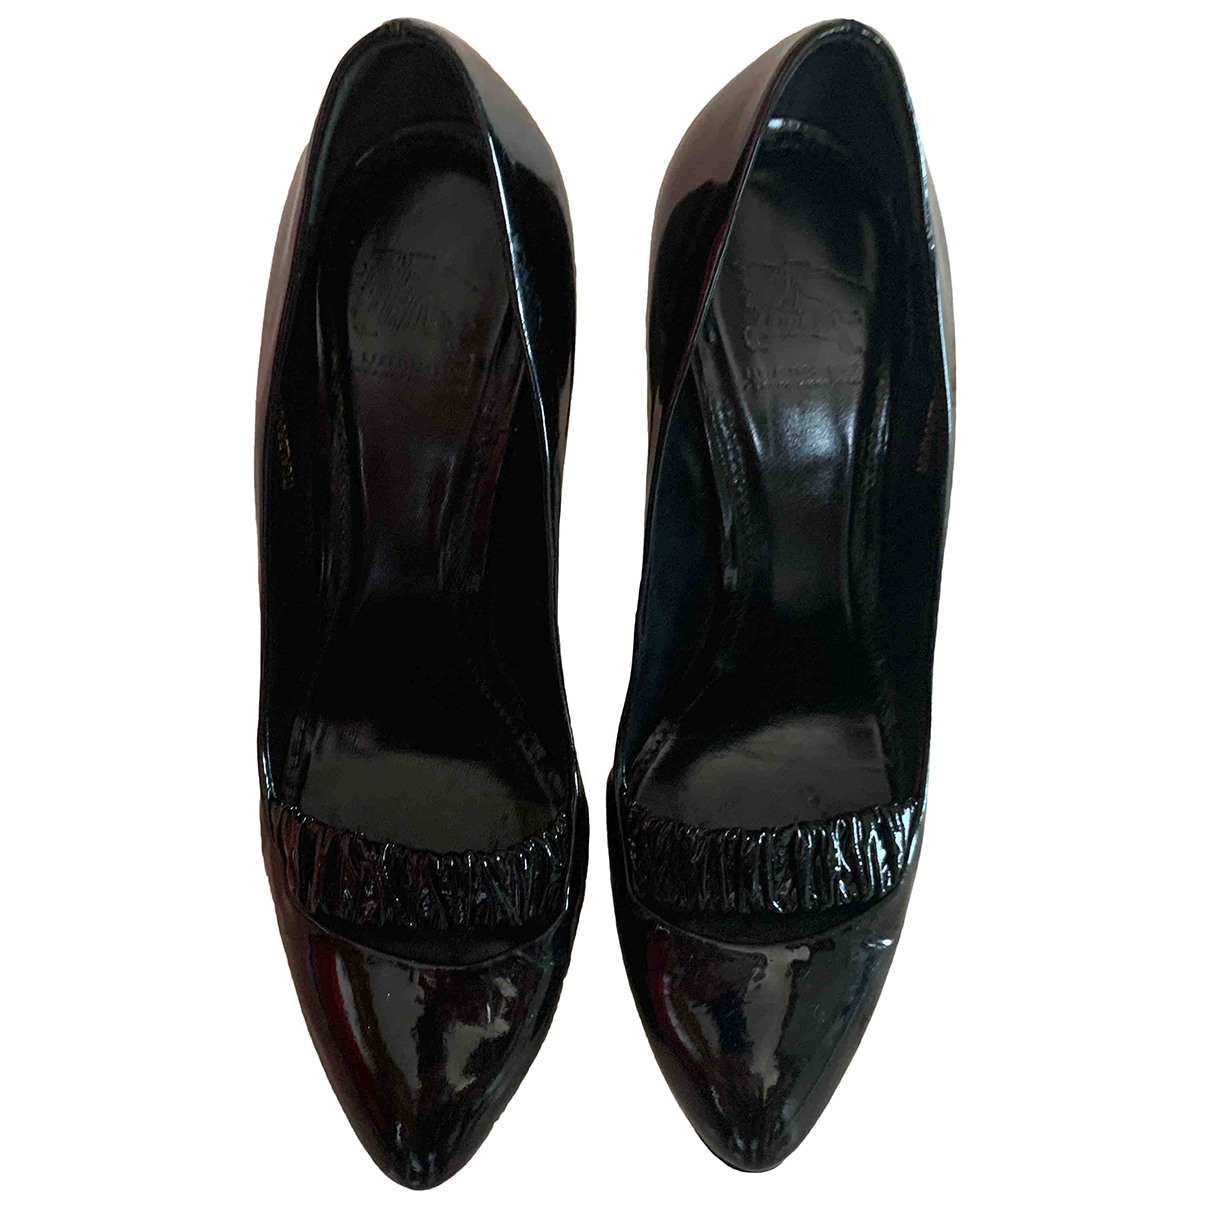 Burberry \N Black Patent leather Heels for Women 38 IT